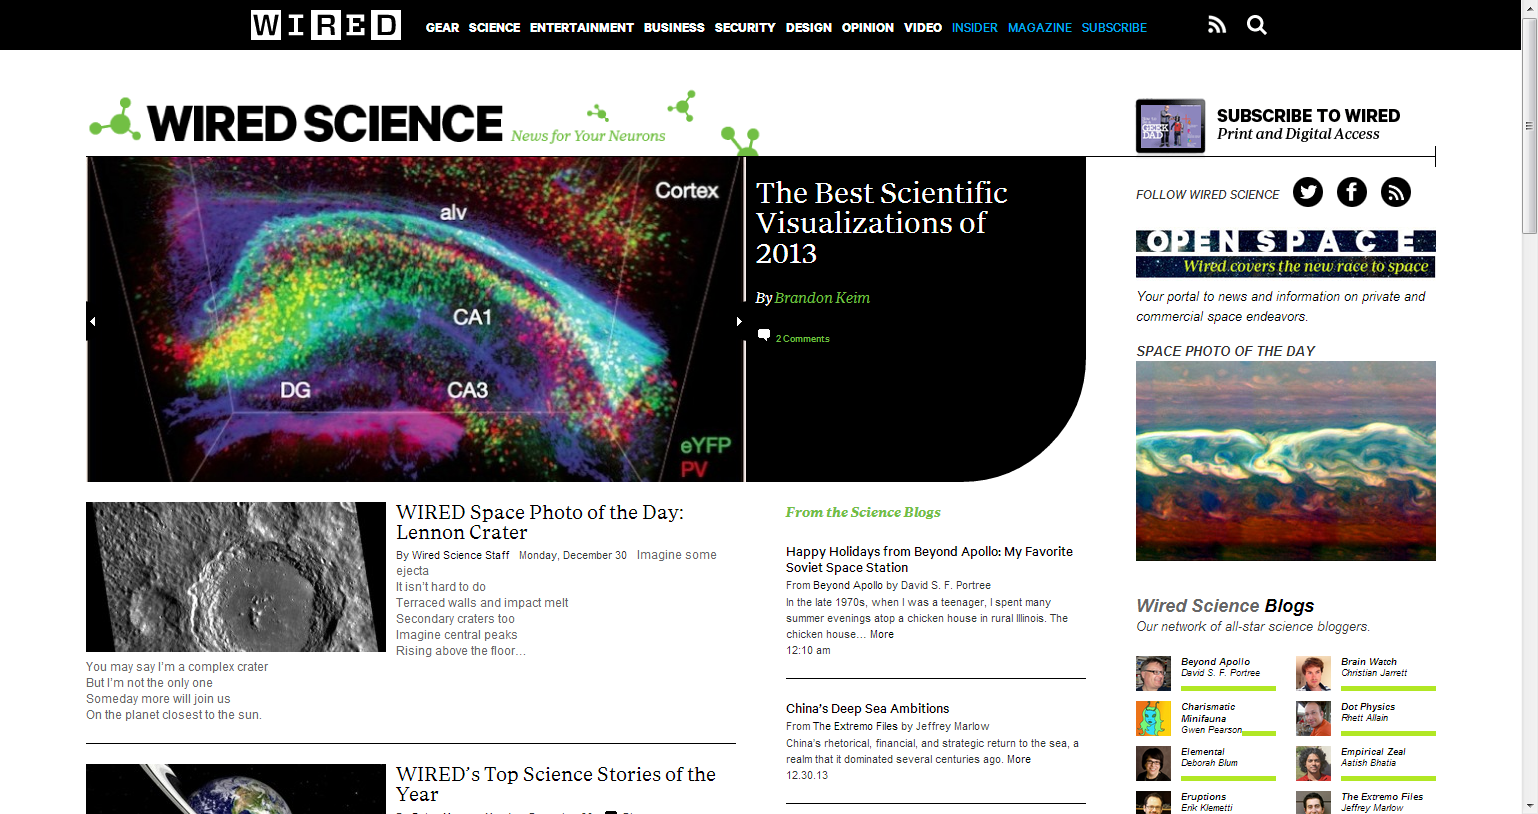 Wired Science - News for Your Neurons